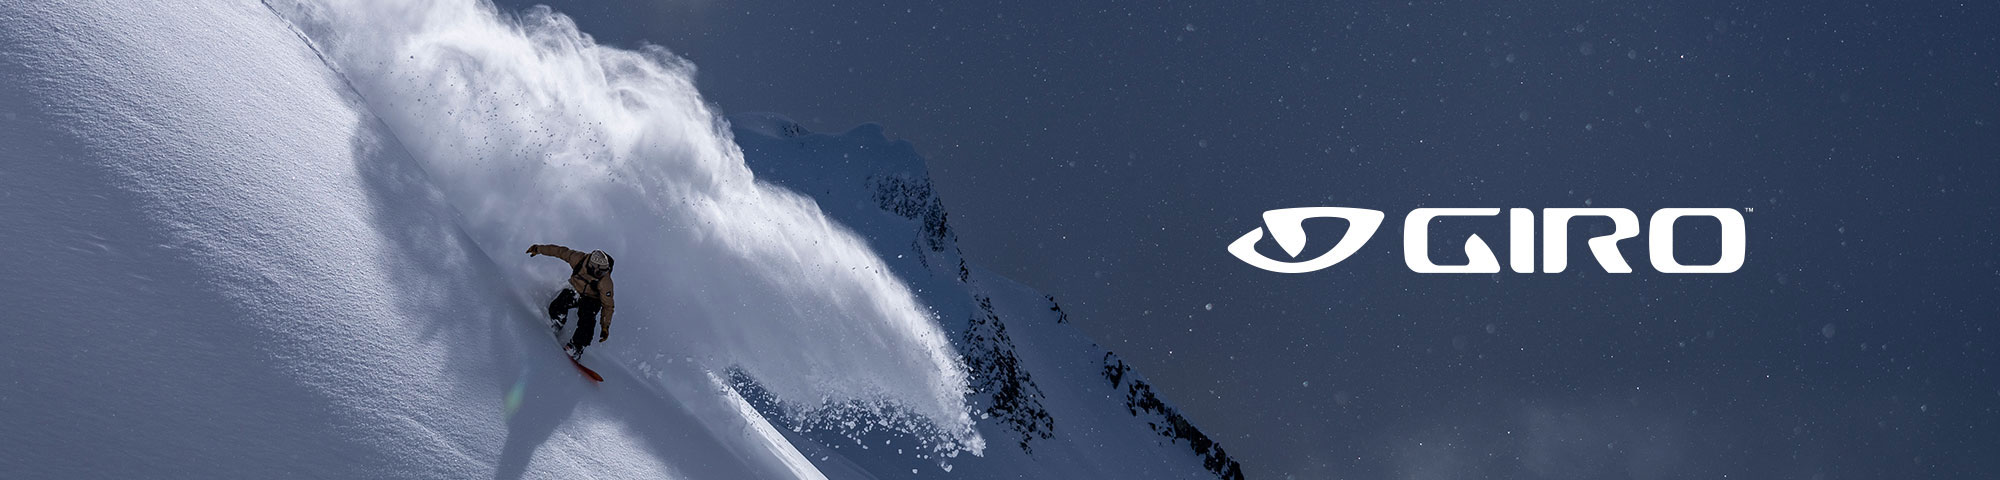 Giro Ringo Prescription Ski Goggles